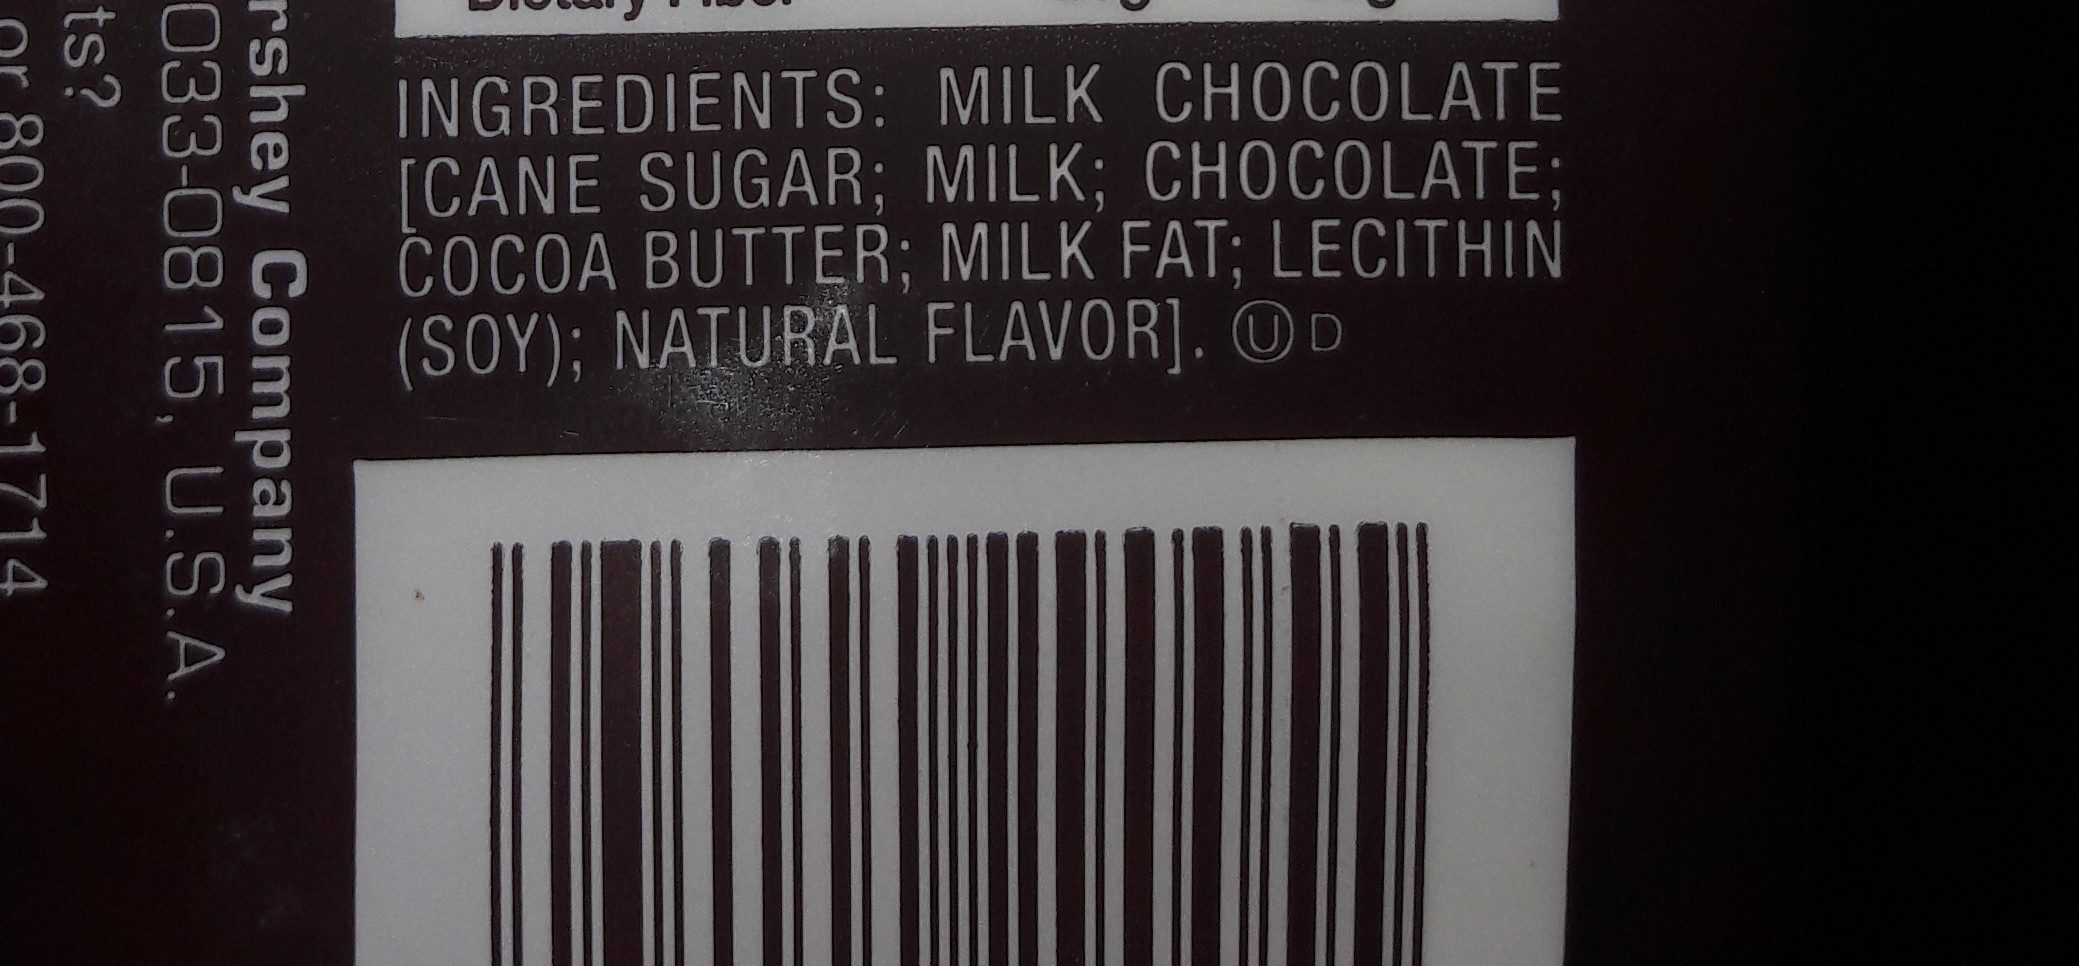 Milk Chocolate - Ingredients